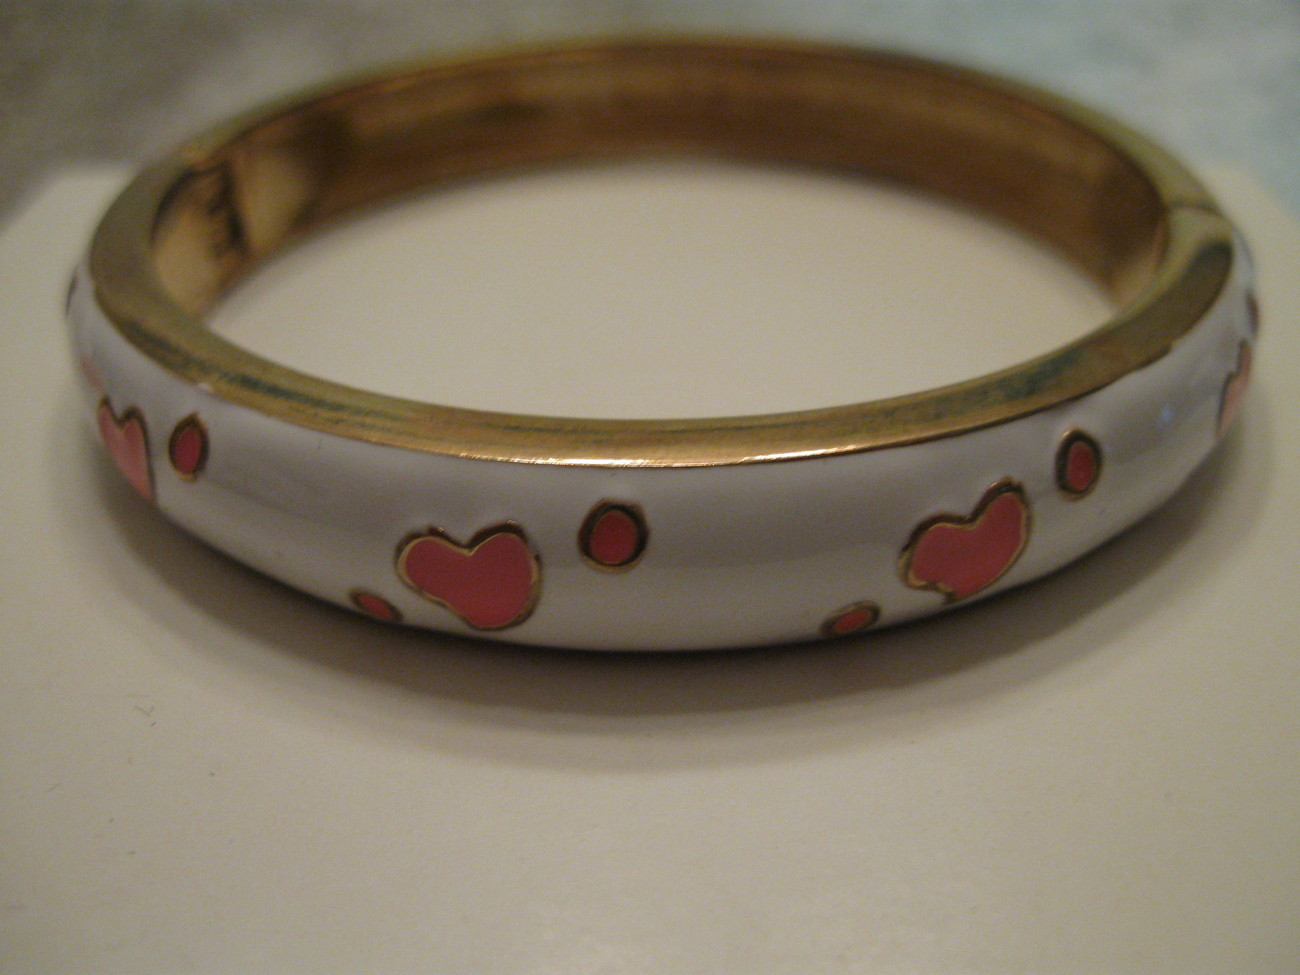 BRACELET, fits avg wrist, White with pink hearts, New